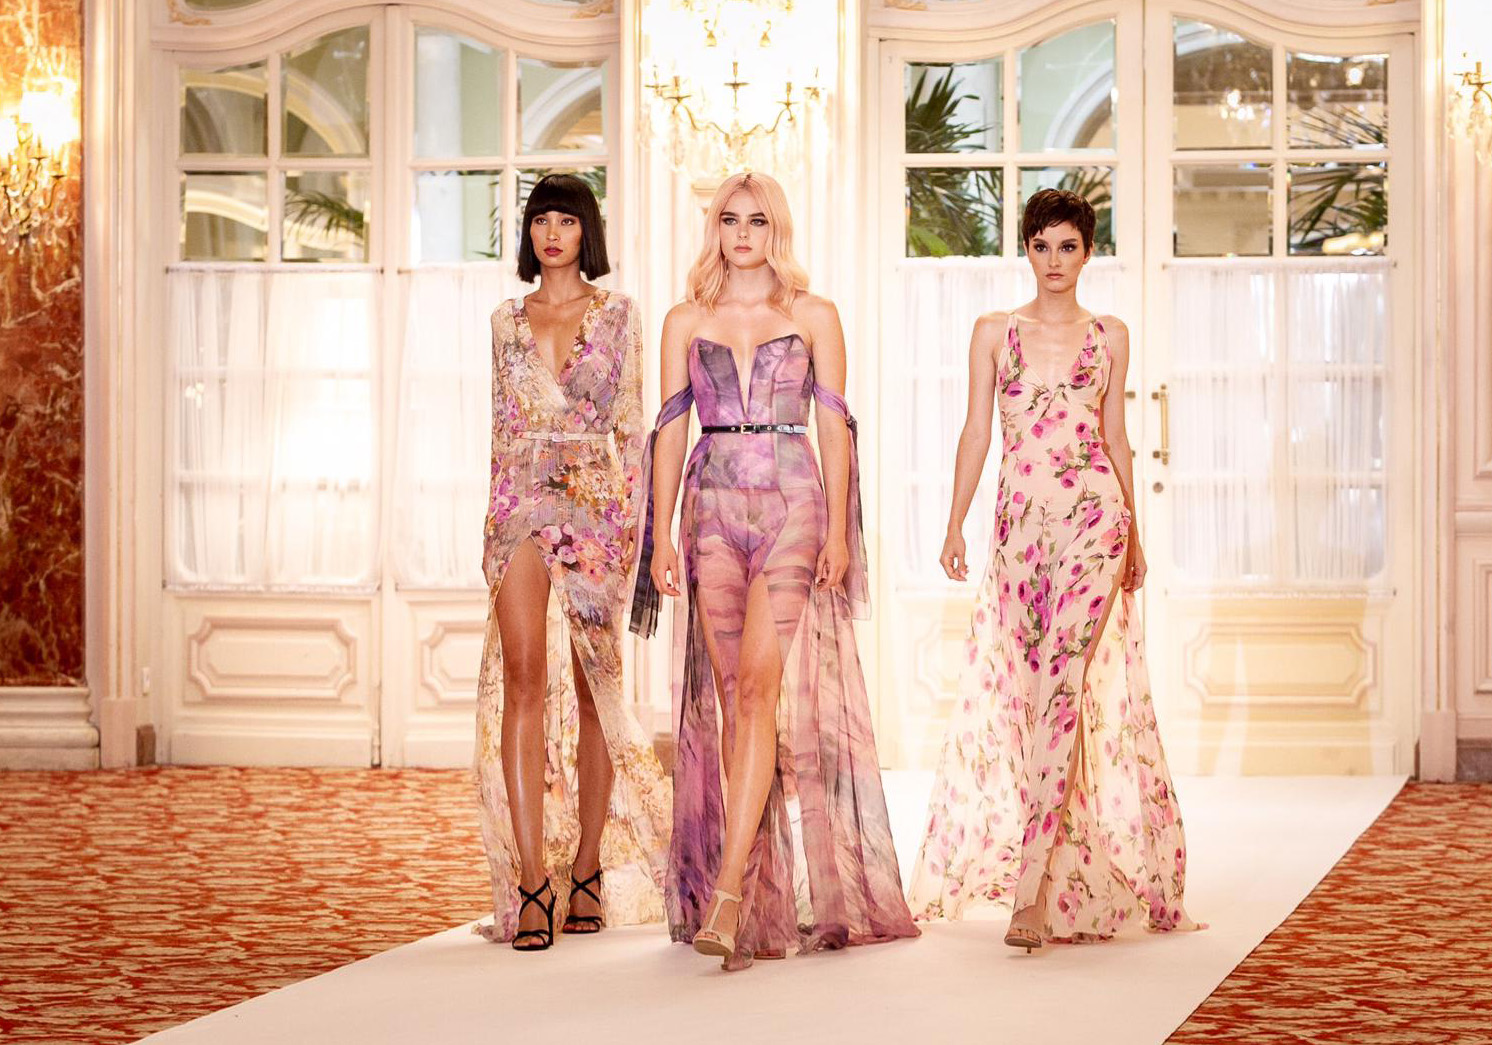 AUSTRIAS NEXT TOP MODEL´S WINNER AND FINALISTS DRESSED BY RAQUEL BALENCIA